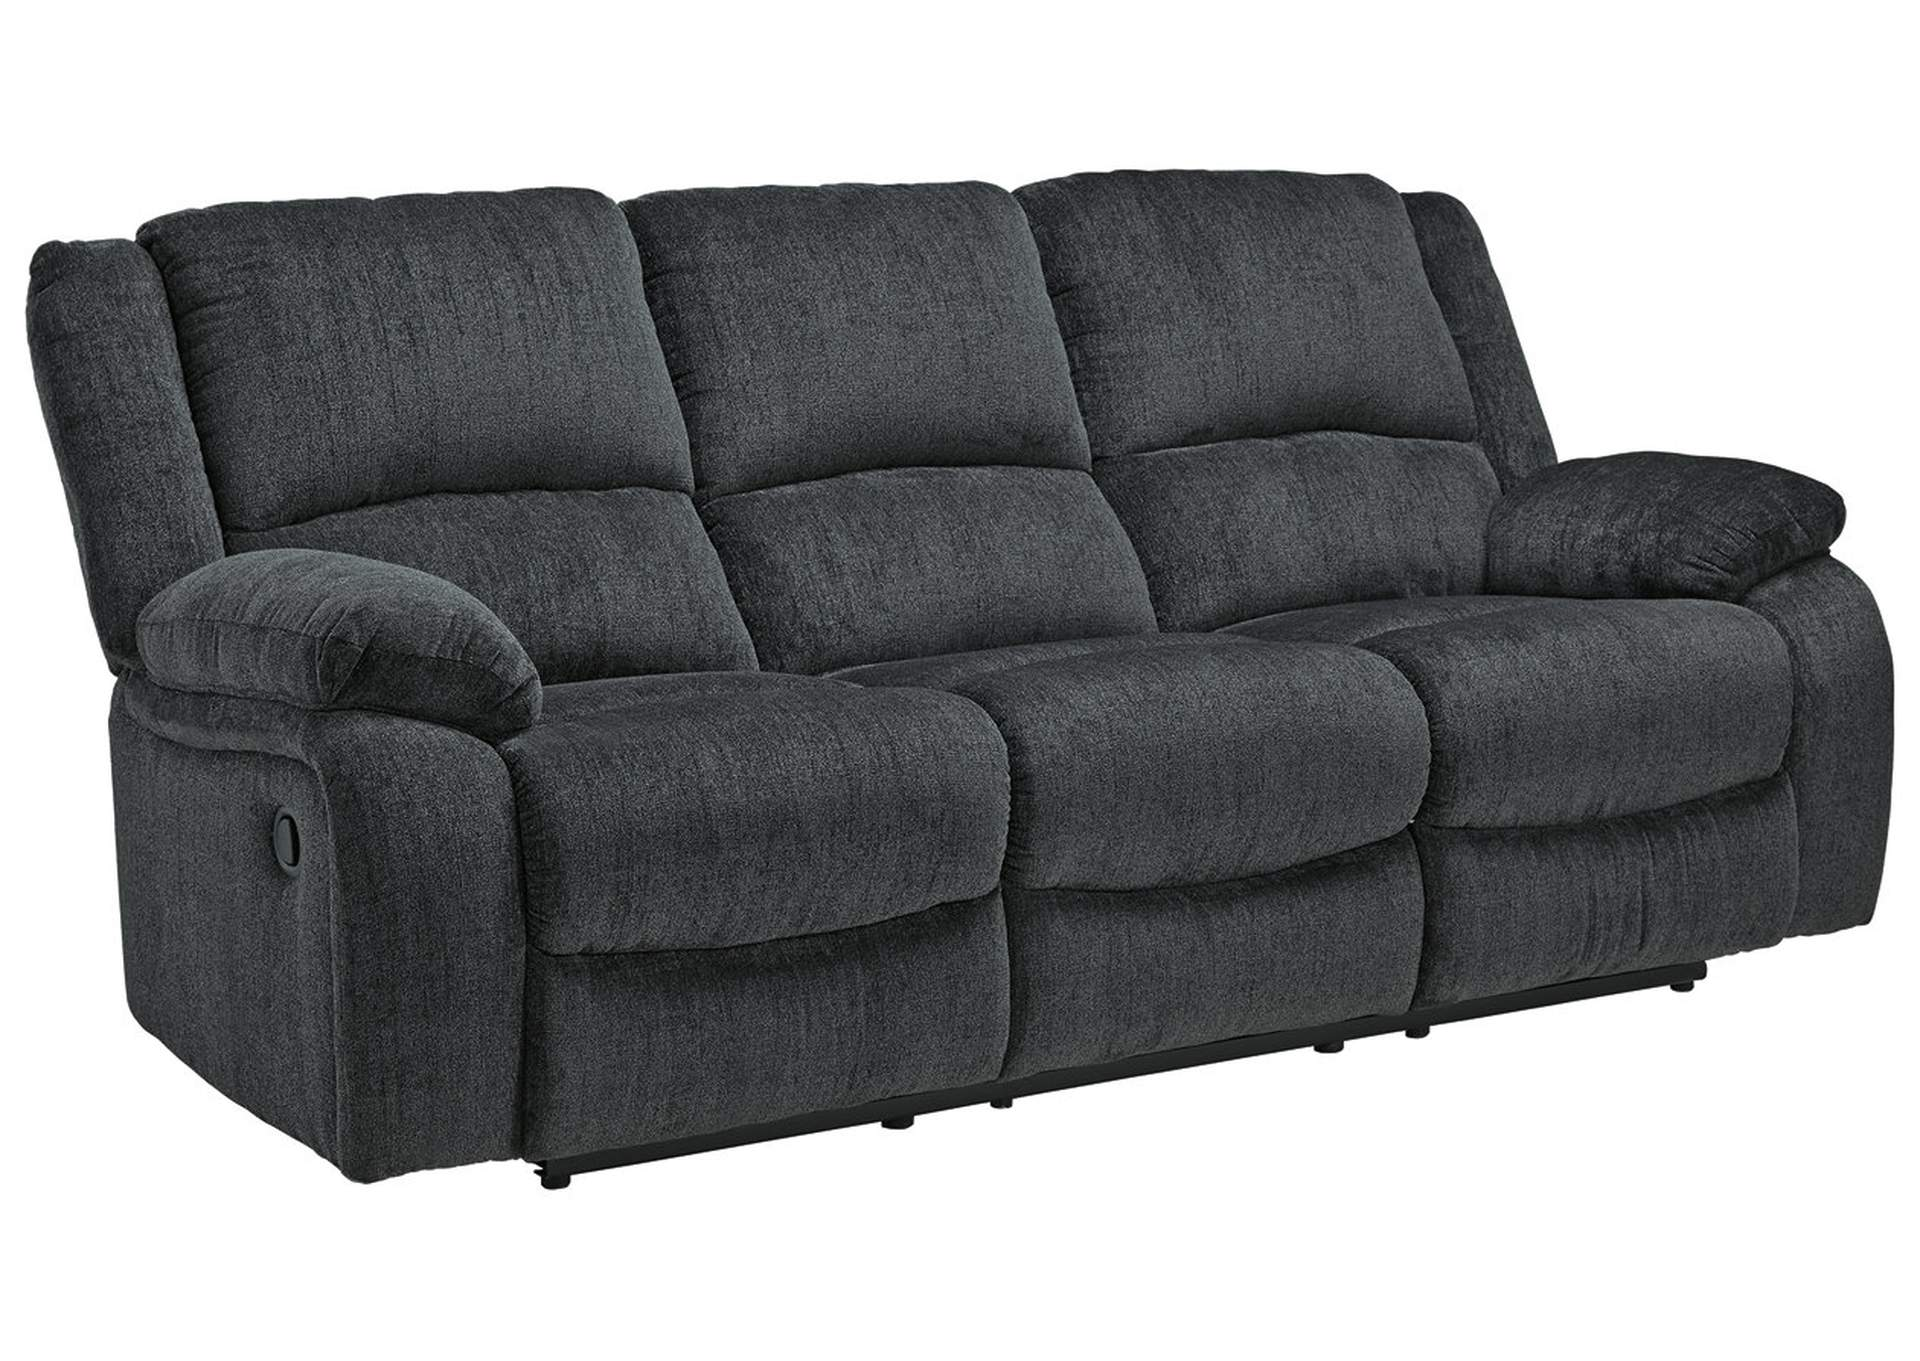 Draycoll Reclining Sofa,Signature Design By Ashley